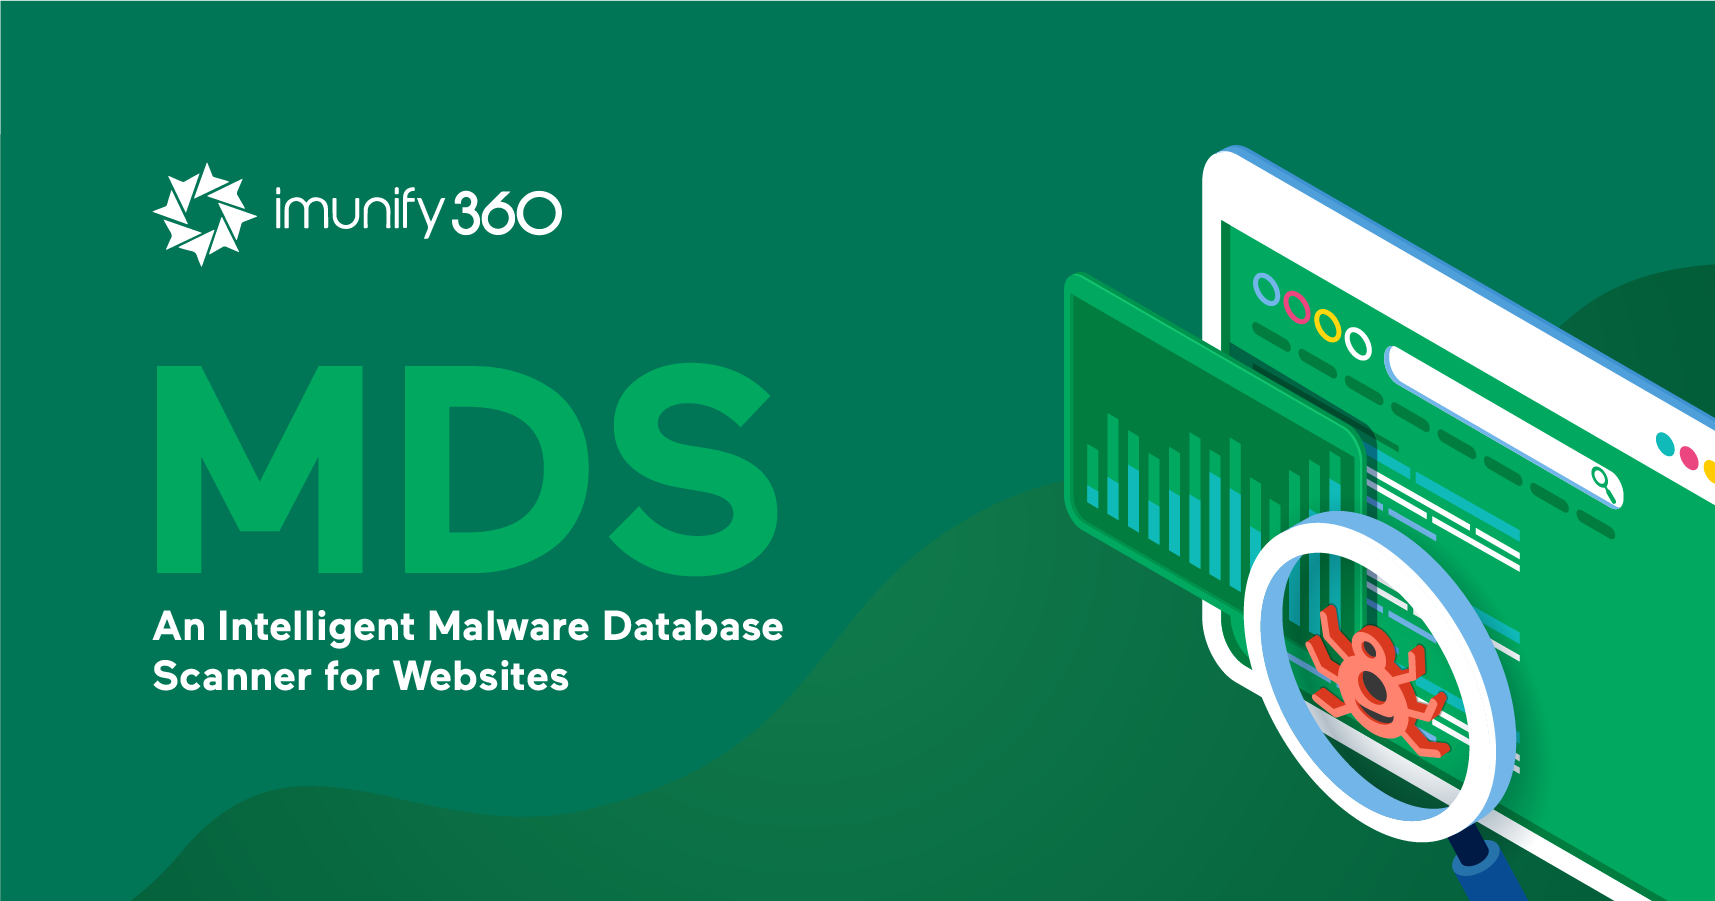 IMUNIFY360_MALWARE-DATABASE_V1_01